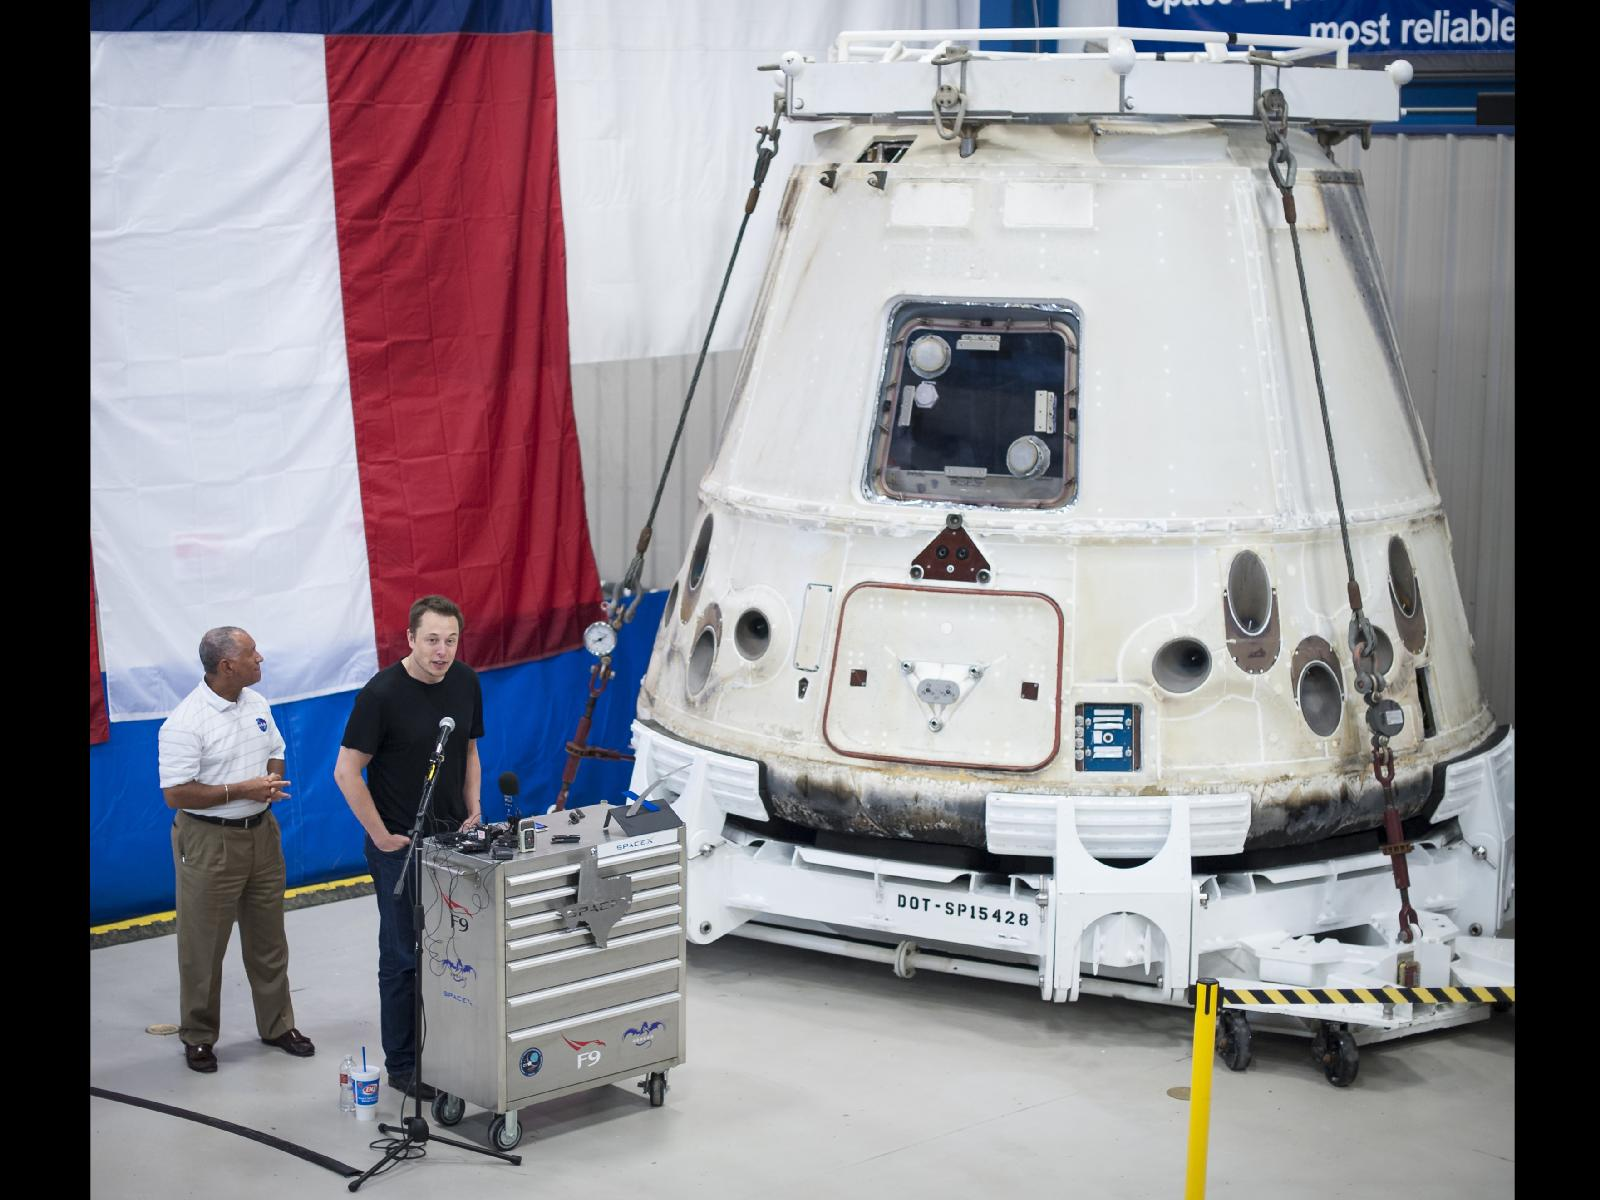 NASA Clears SpaceX for Private Cargo Delivery Missions